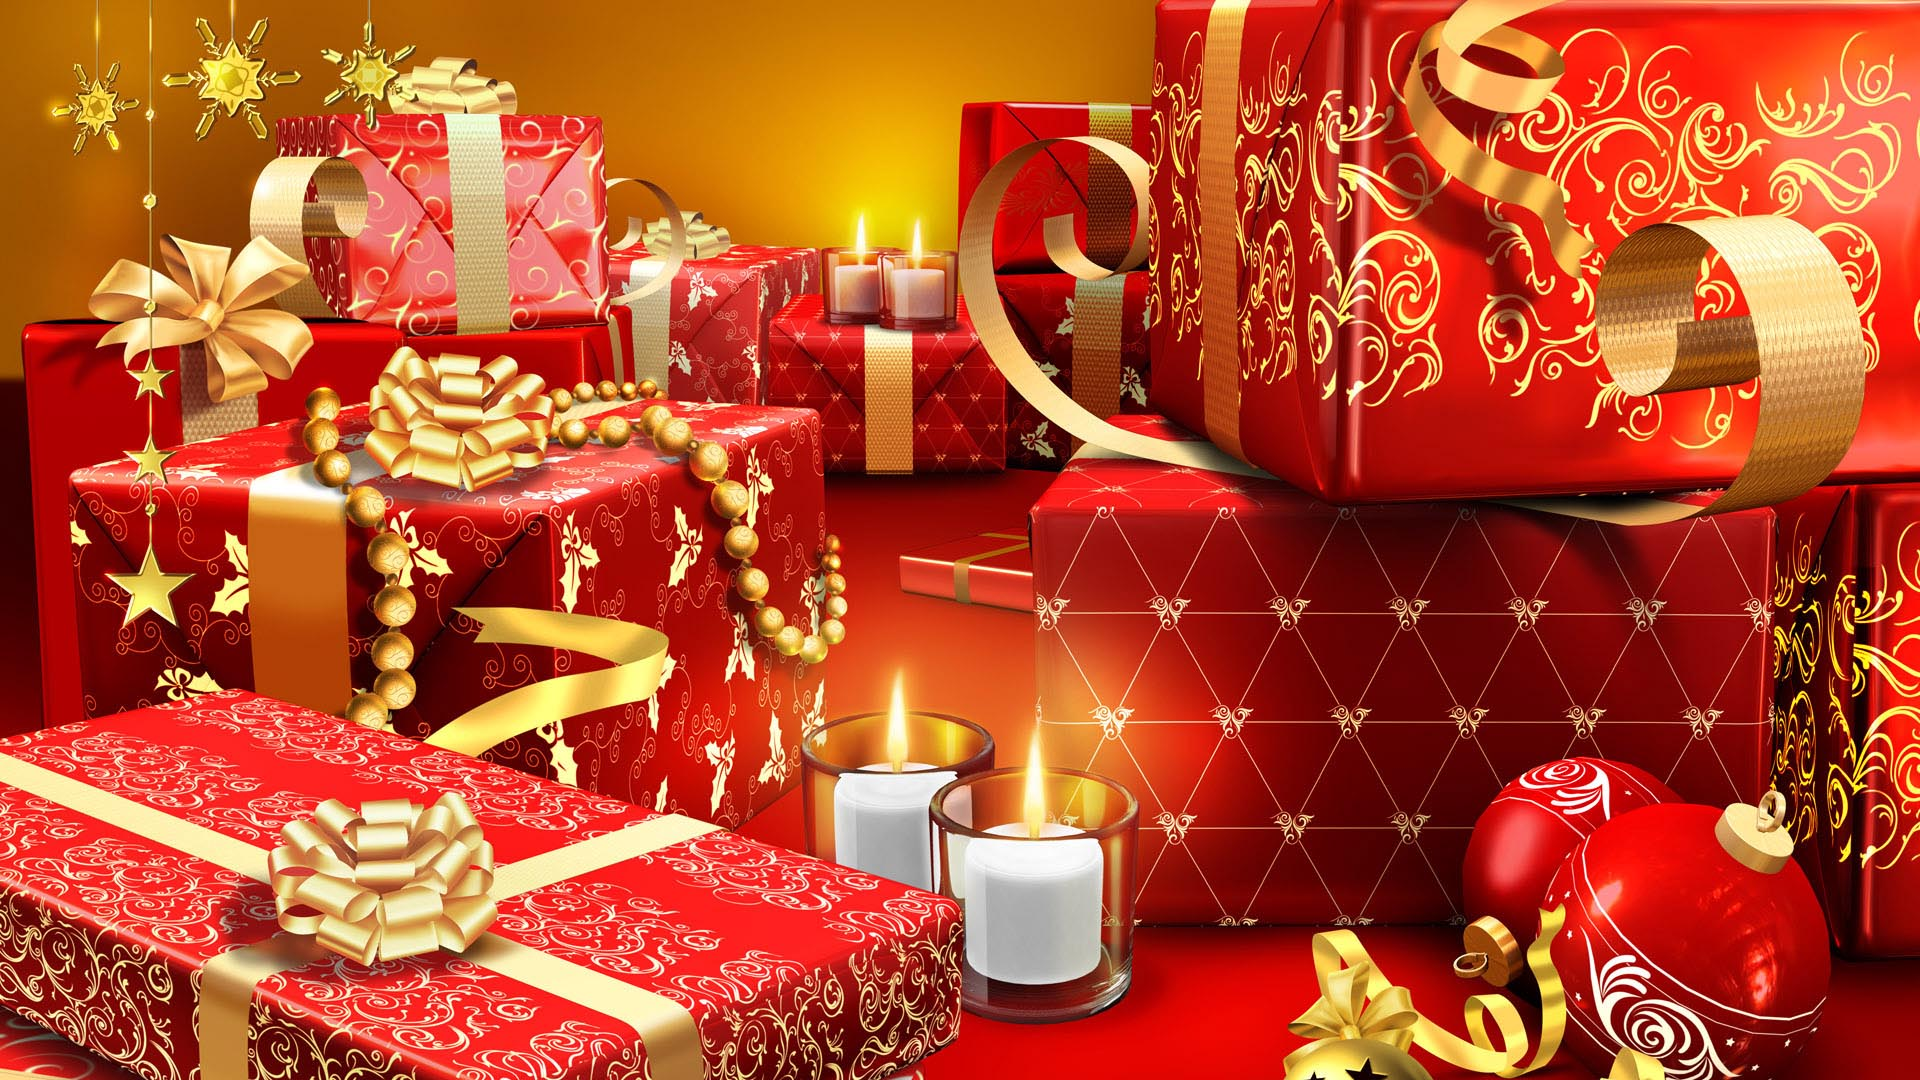 christmas presents wrapped in red hd large resolution wallpaper.